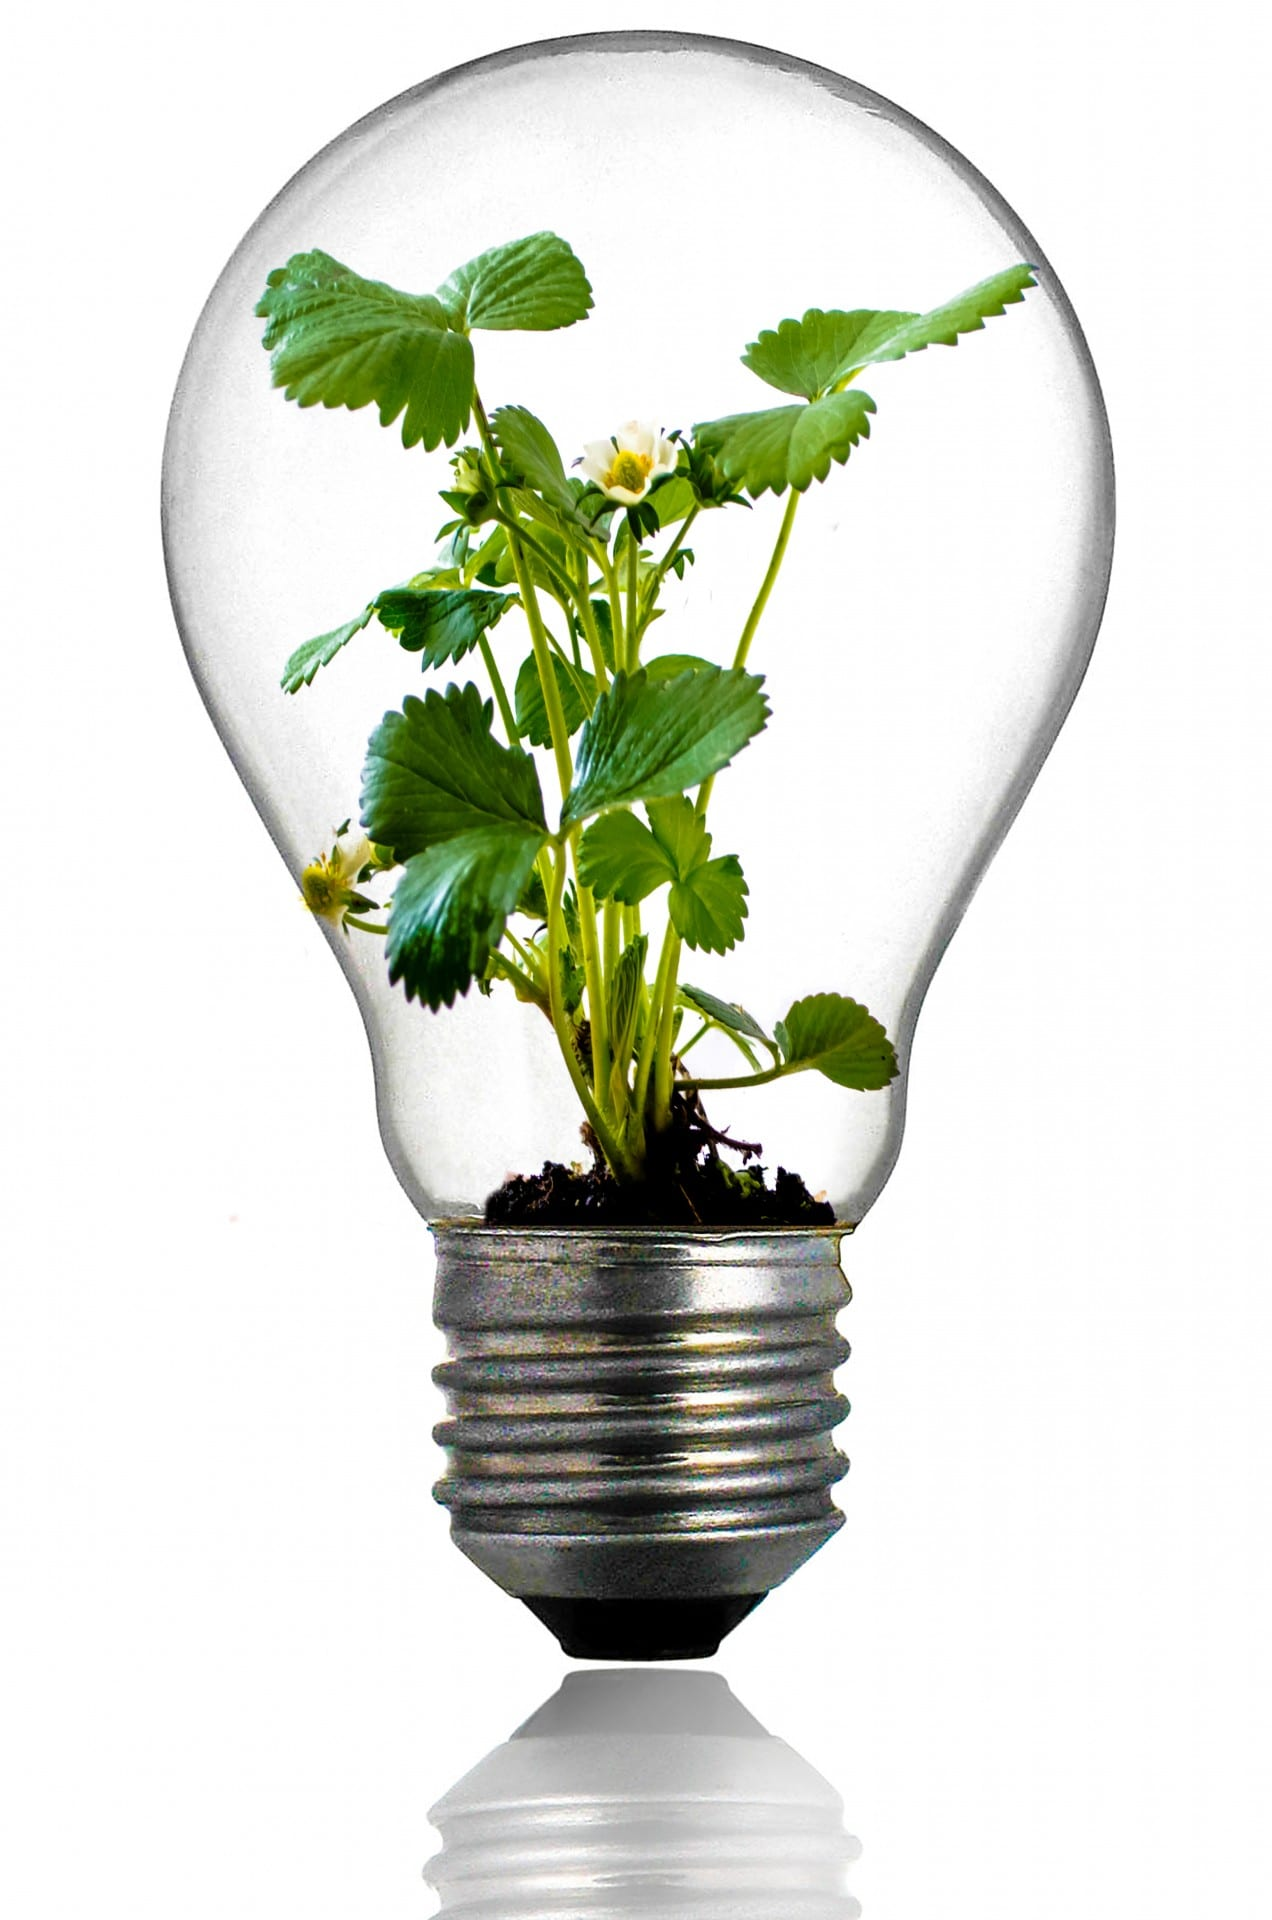 green-plant-in-the-light-bulb.jpg